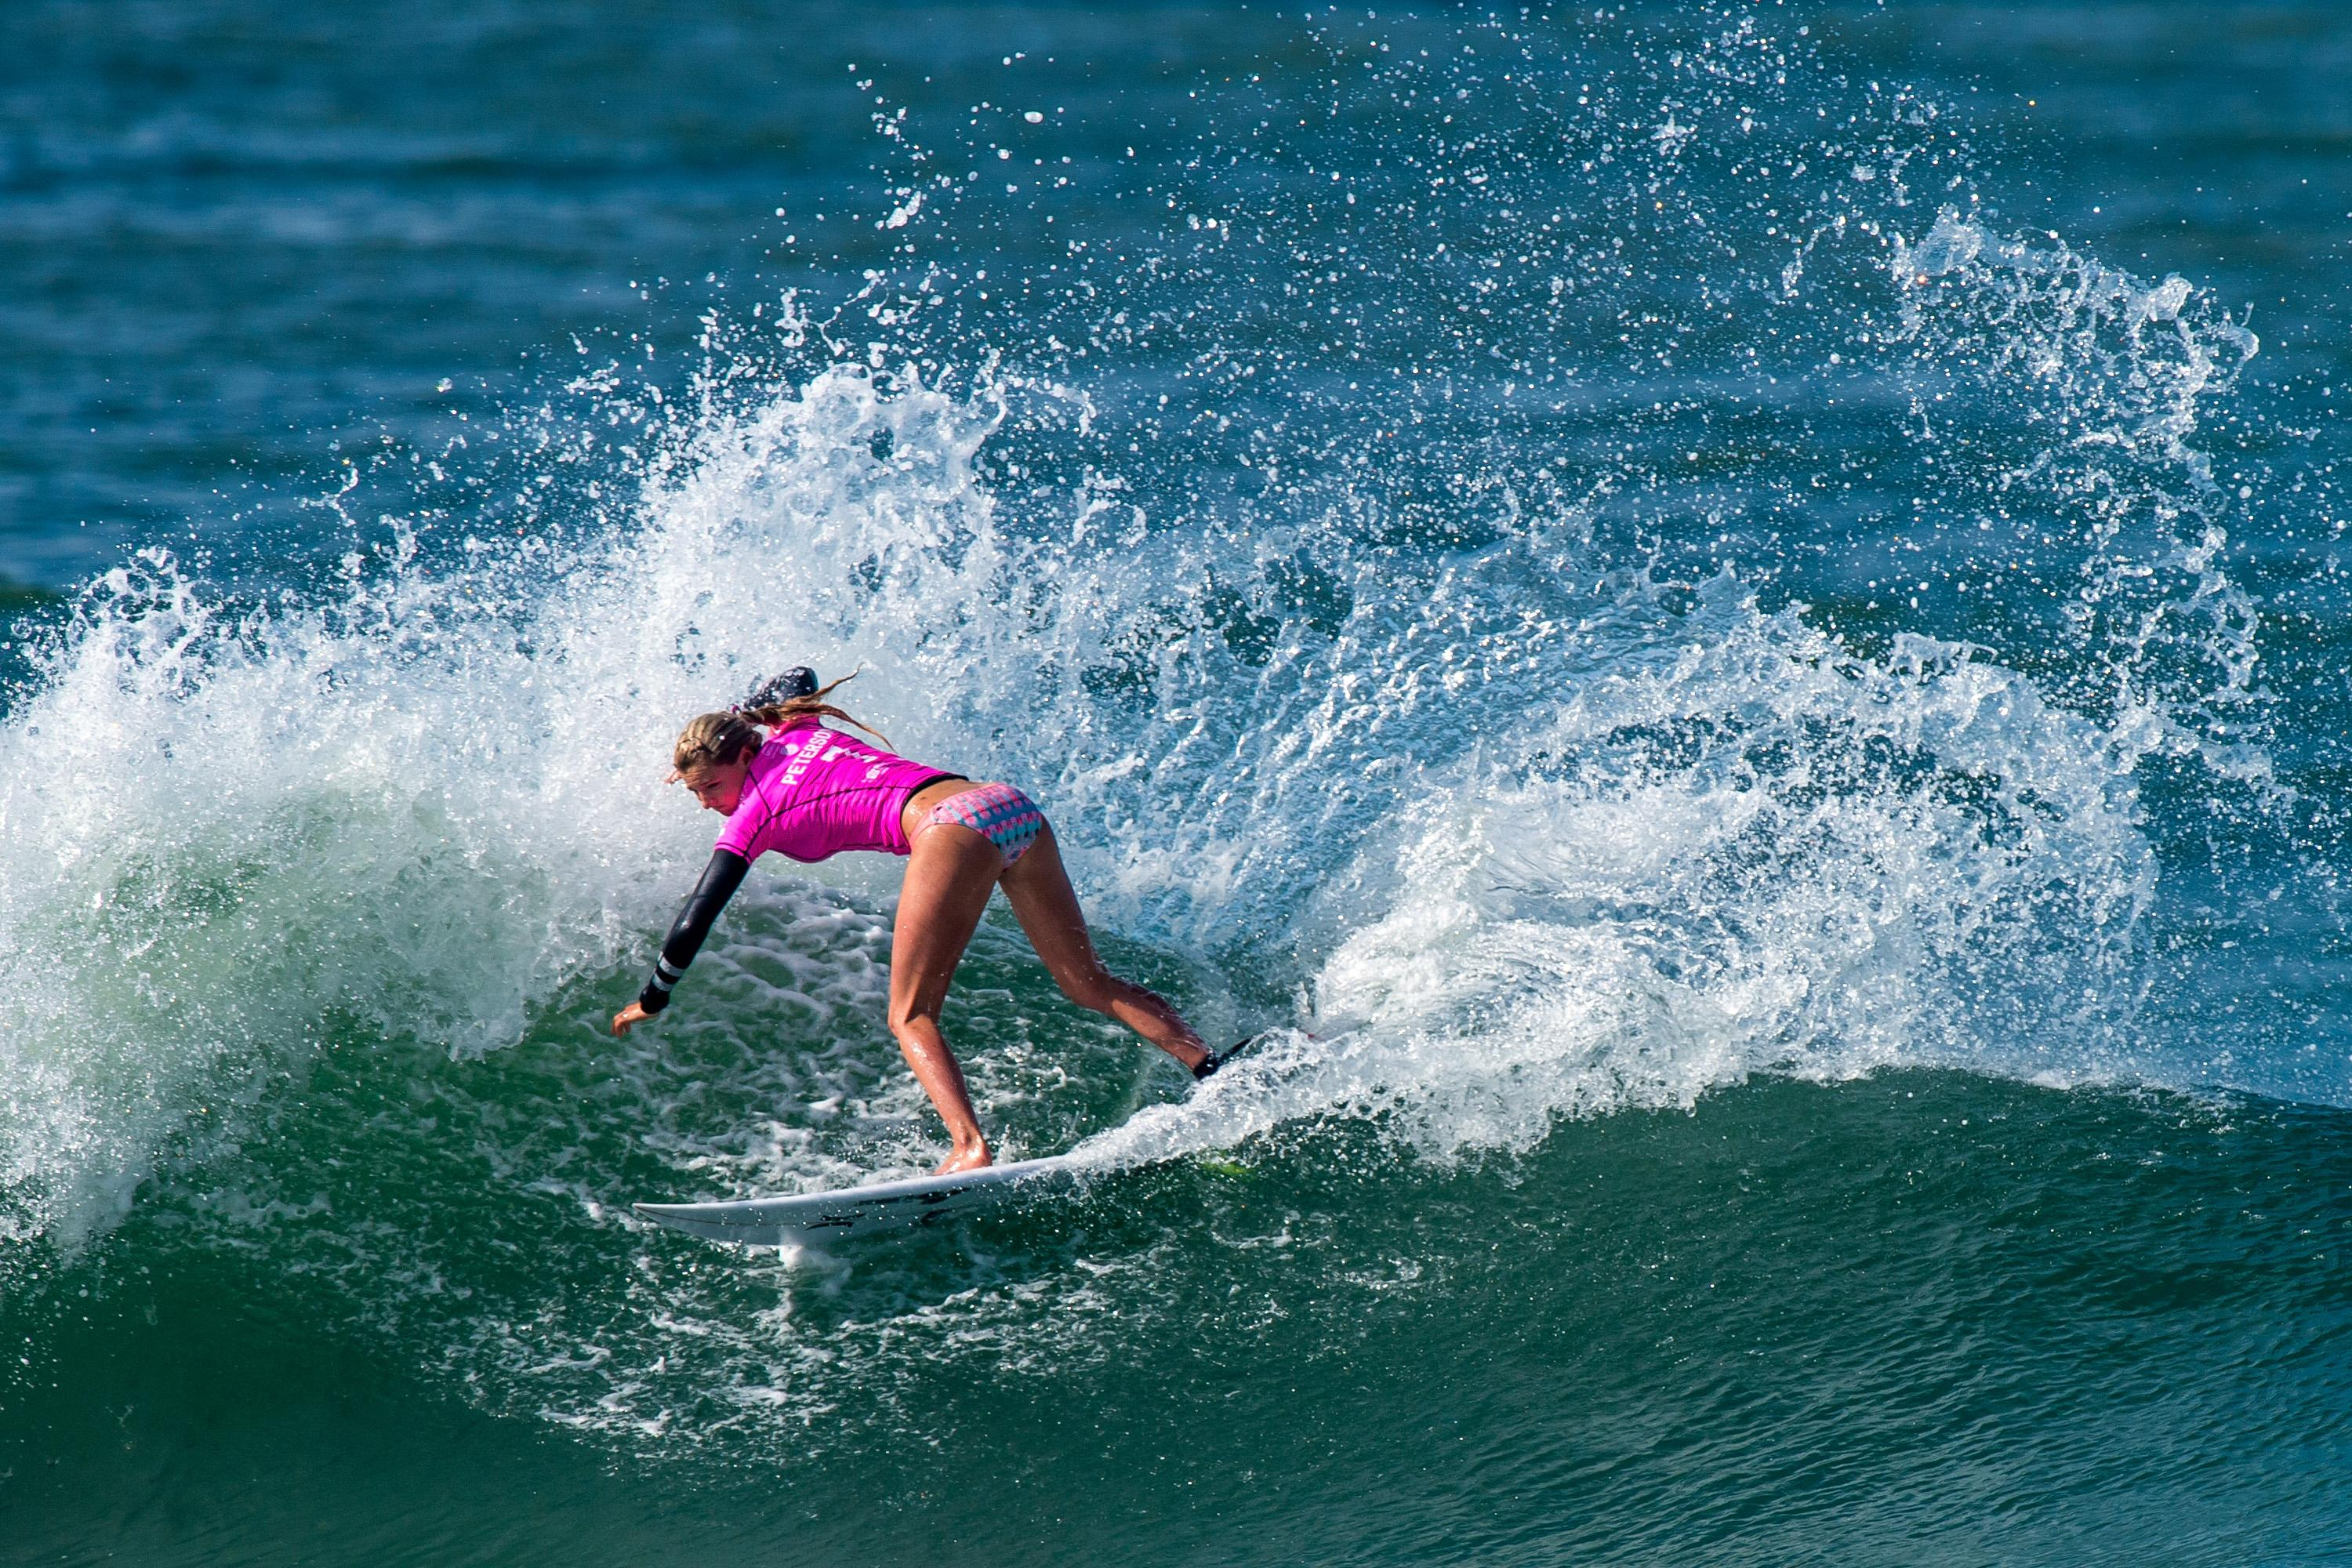 Some surfers think the new rules are a good idea